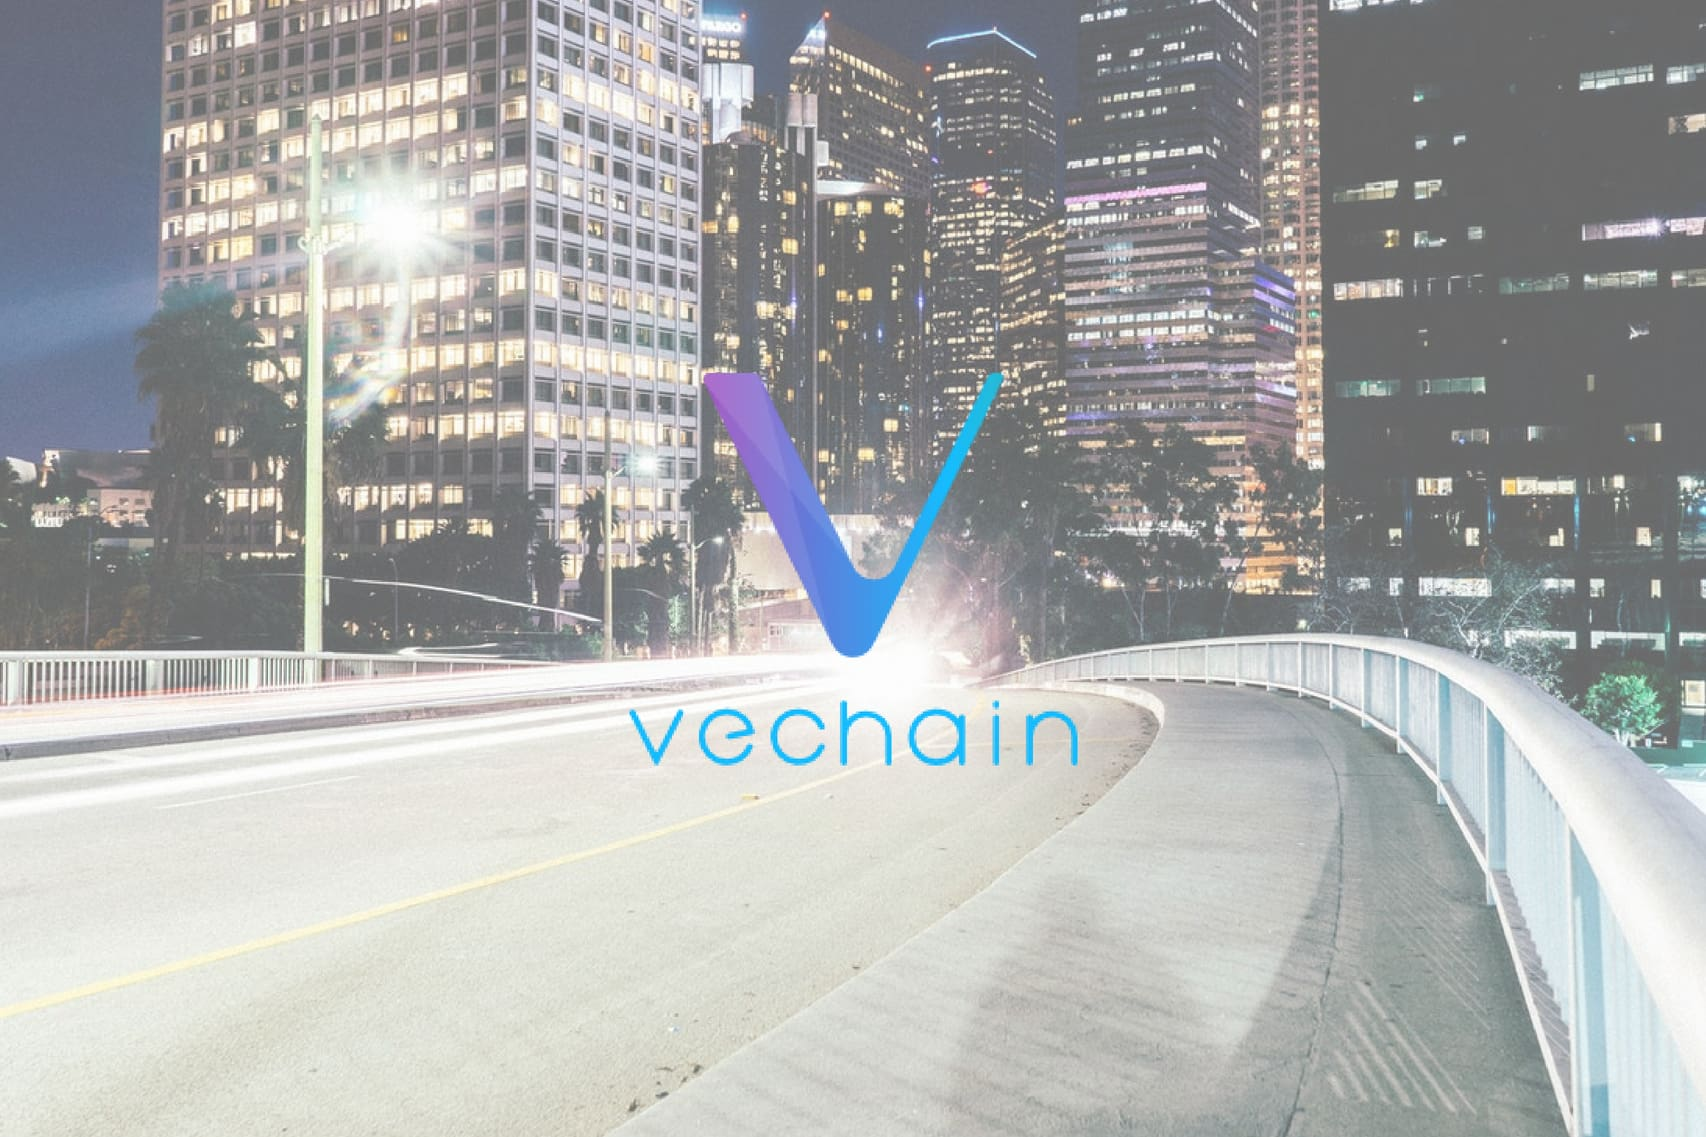 VeChain Whitepaper Highlights